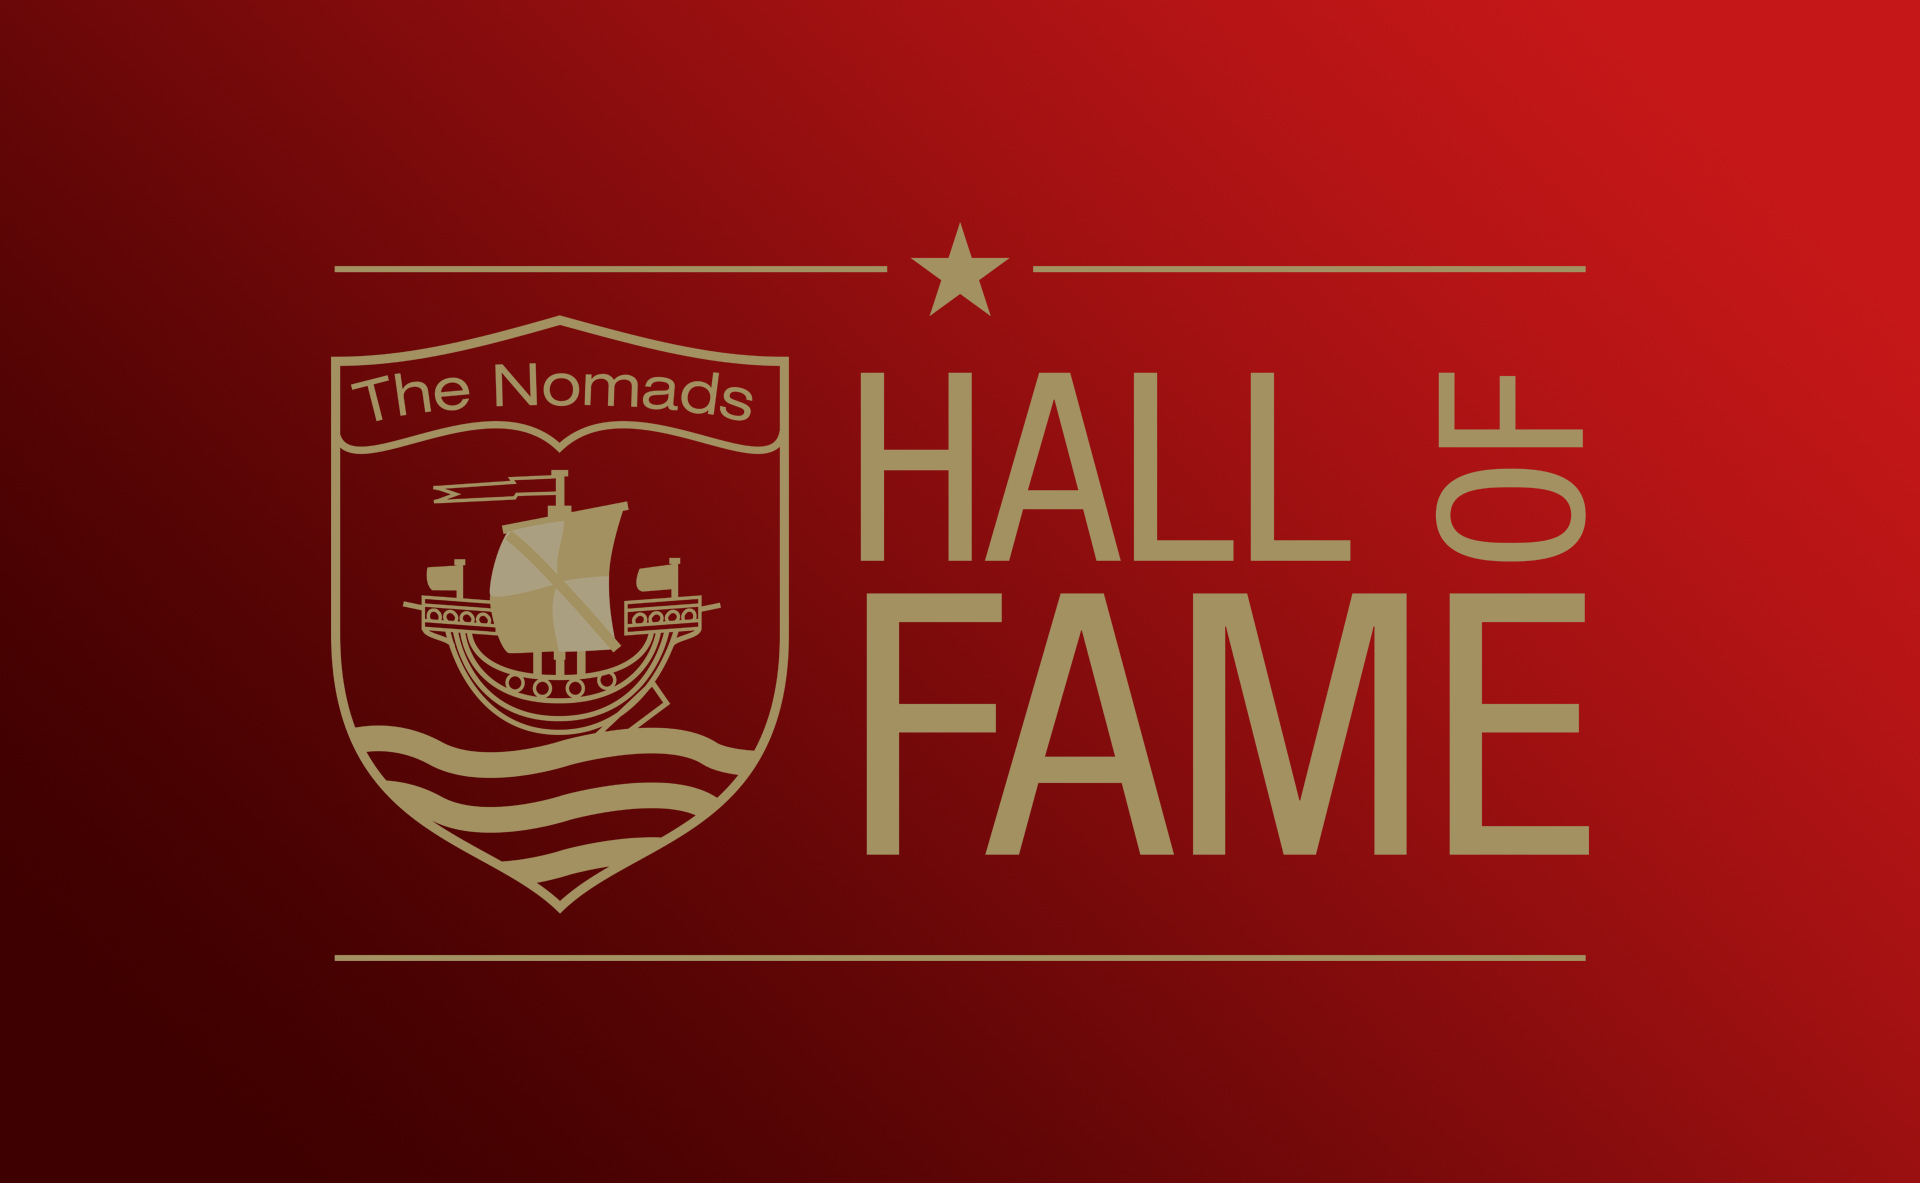 Connah's Quay Nomads 2018 Hall of Fame